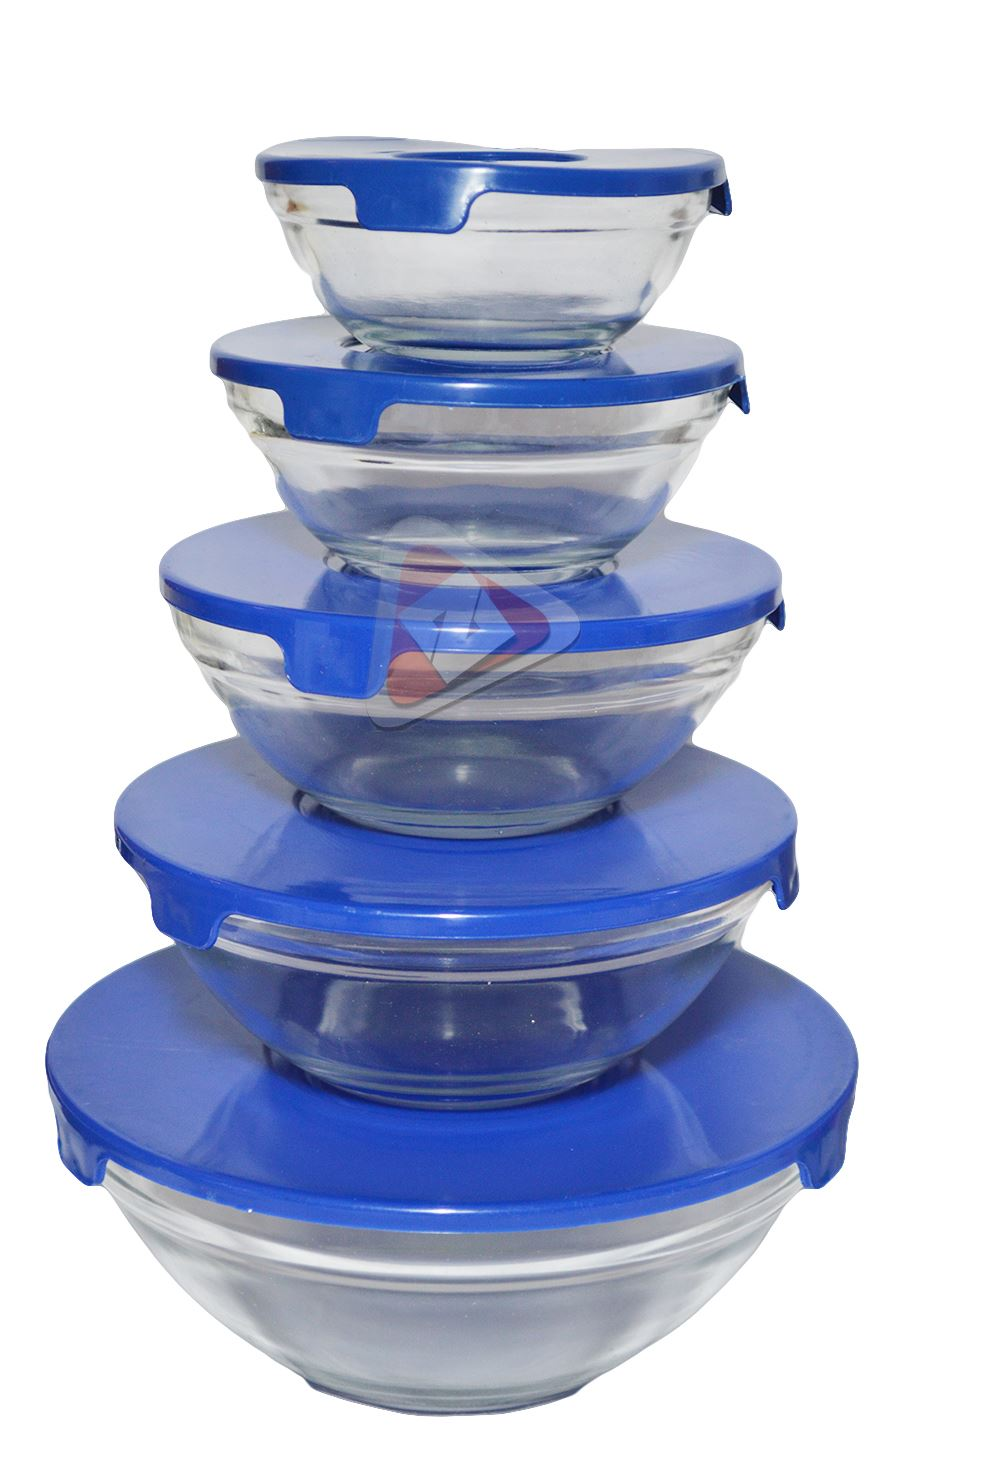 new 5pc round glass nested dipping or storage bowls with airtight lids bnib ebay. Black Bedroom Furniture Sets. Home Design Ideas